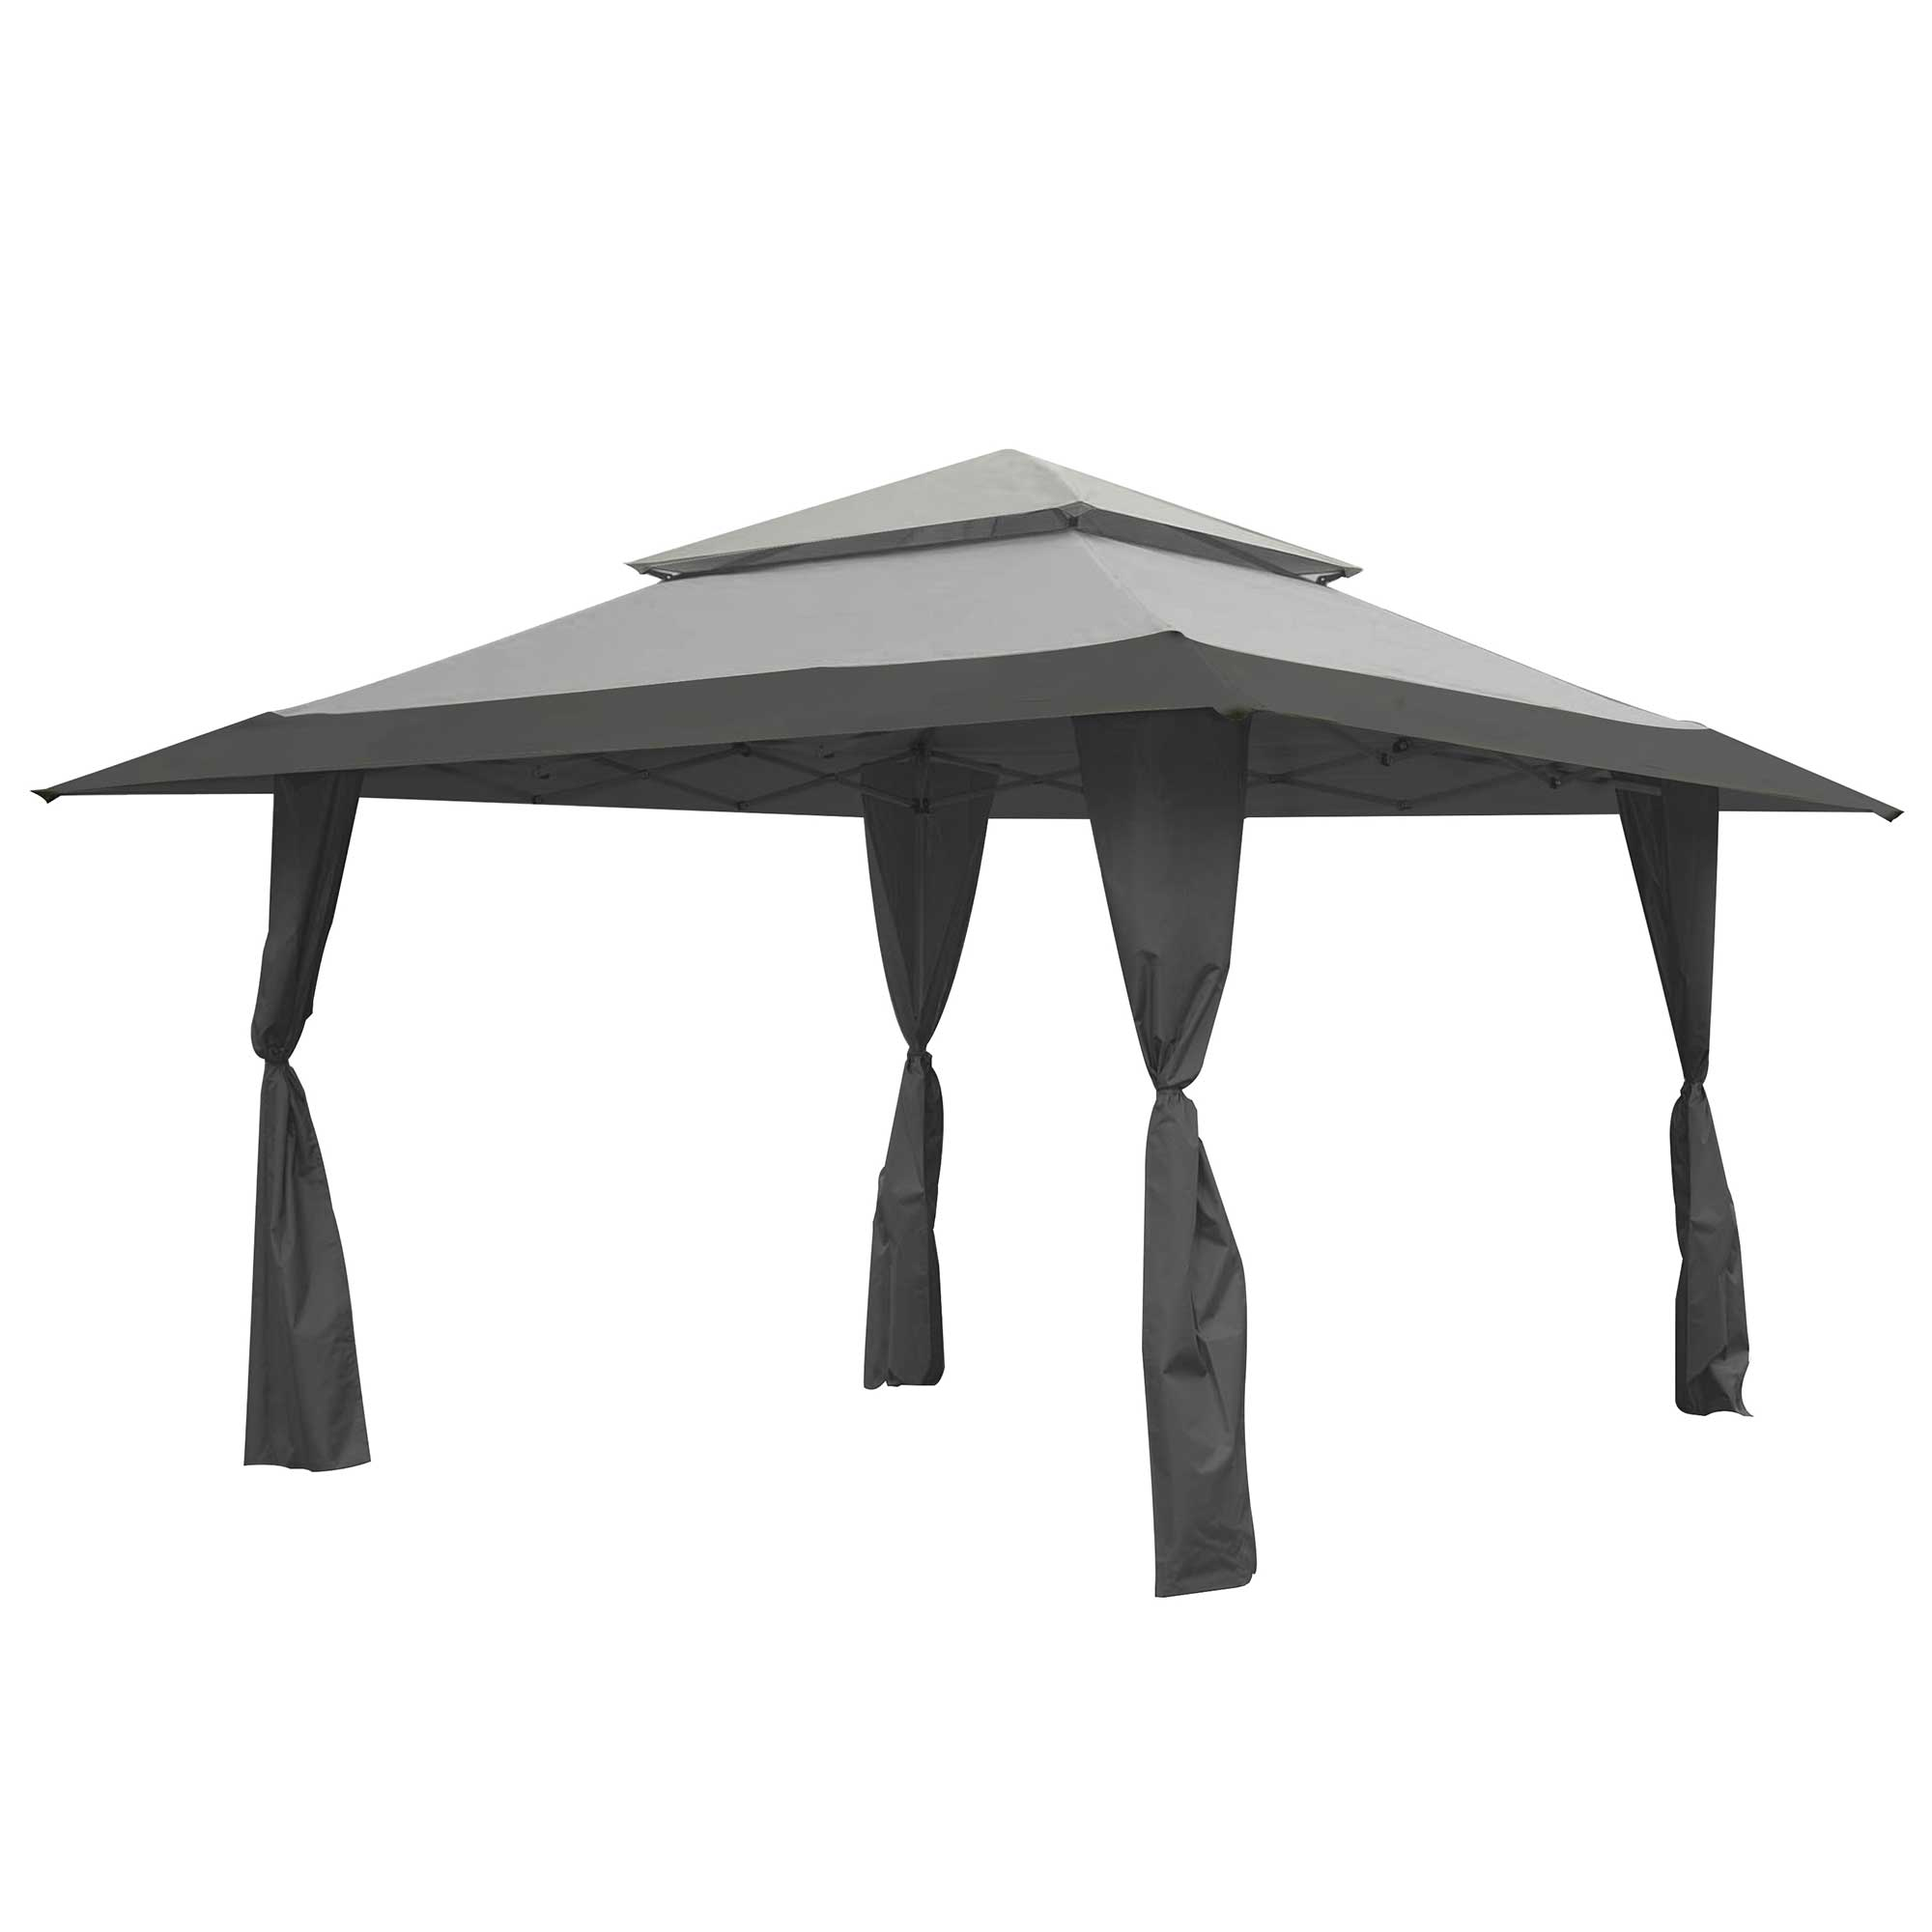 Z-Shade 13 x 13 Foot Instant Gazebo Canopy Tent Outdoor Patio Shelter Gray  sc 1 st  Walmart & Z-Shade 13 x 13 Foot Instant Gazebo Canopy Tent Outdoor Patio ...